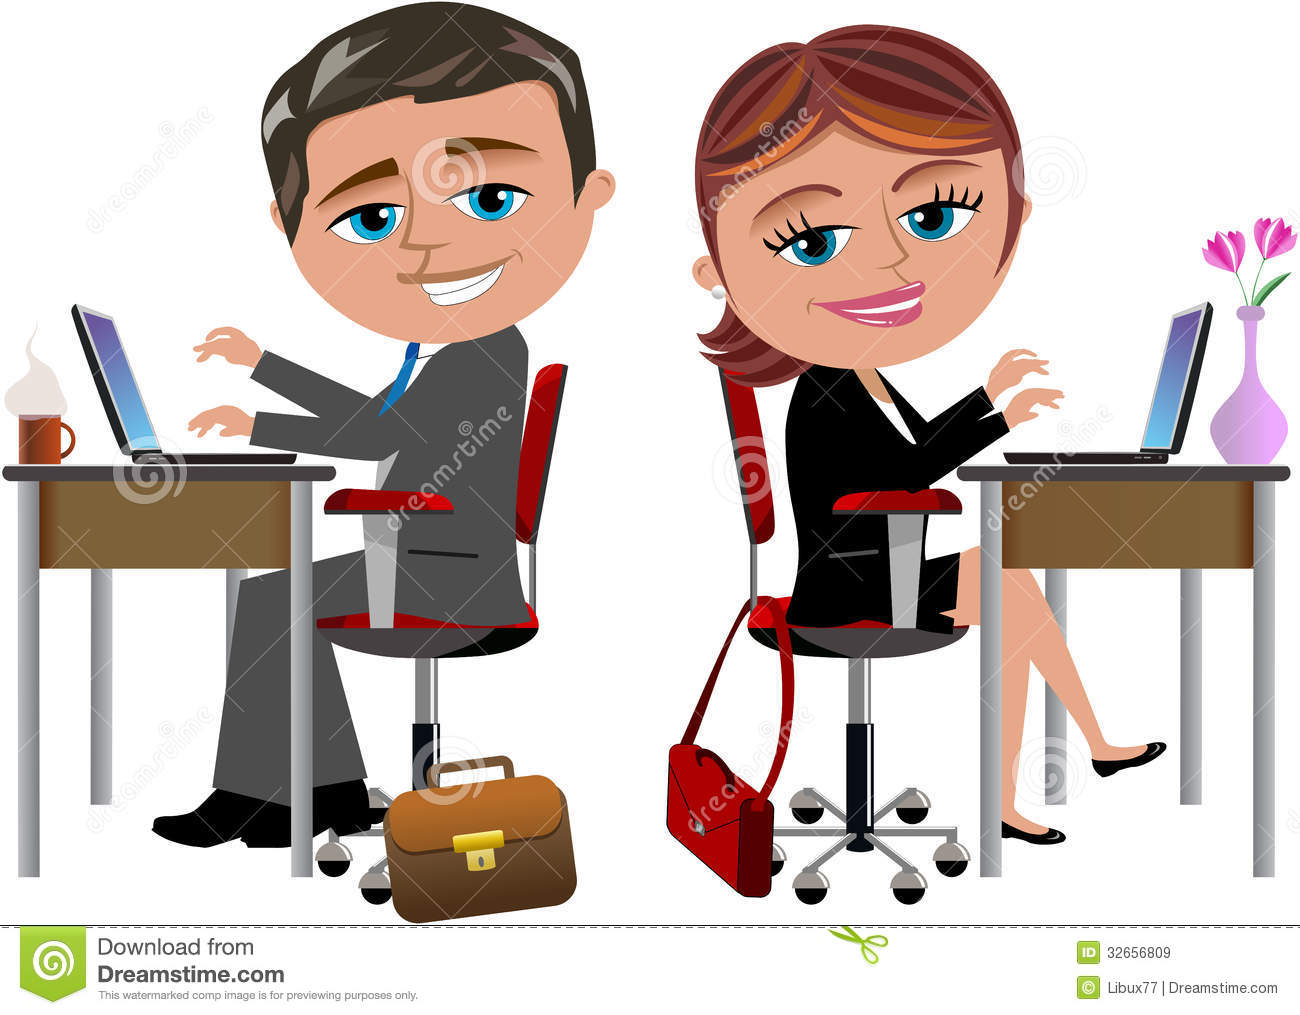 Working image clipart clipart library Work Clip Art Free | Clipart Panda - Free Clipart Images clipart library